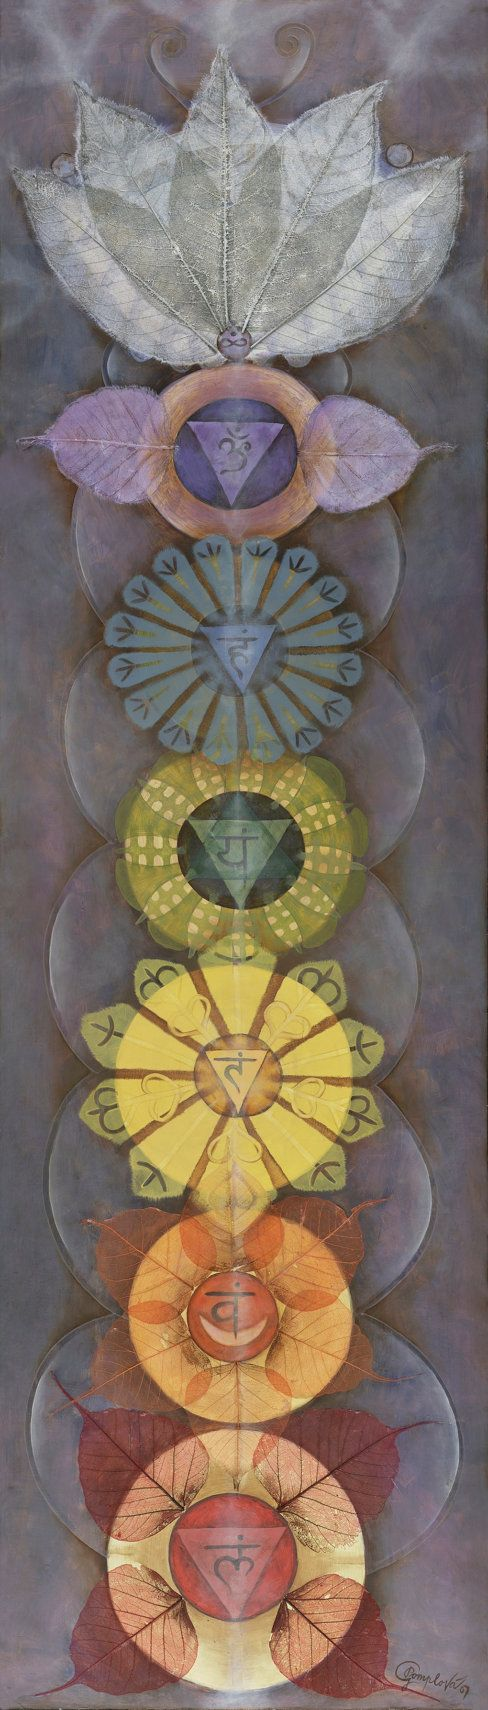 bodhi CHAKRAS painting yoga art reiki energy YOGA by GPyoga